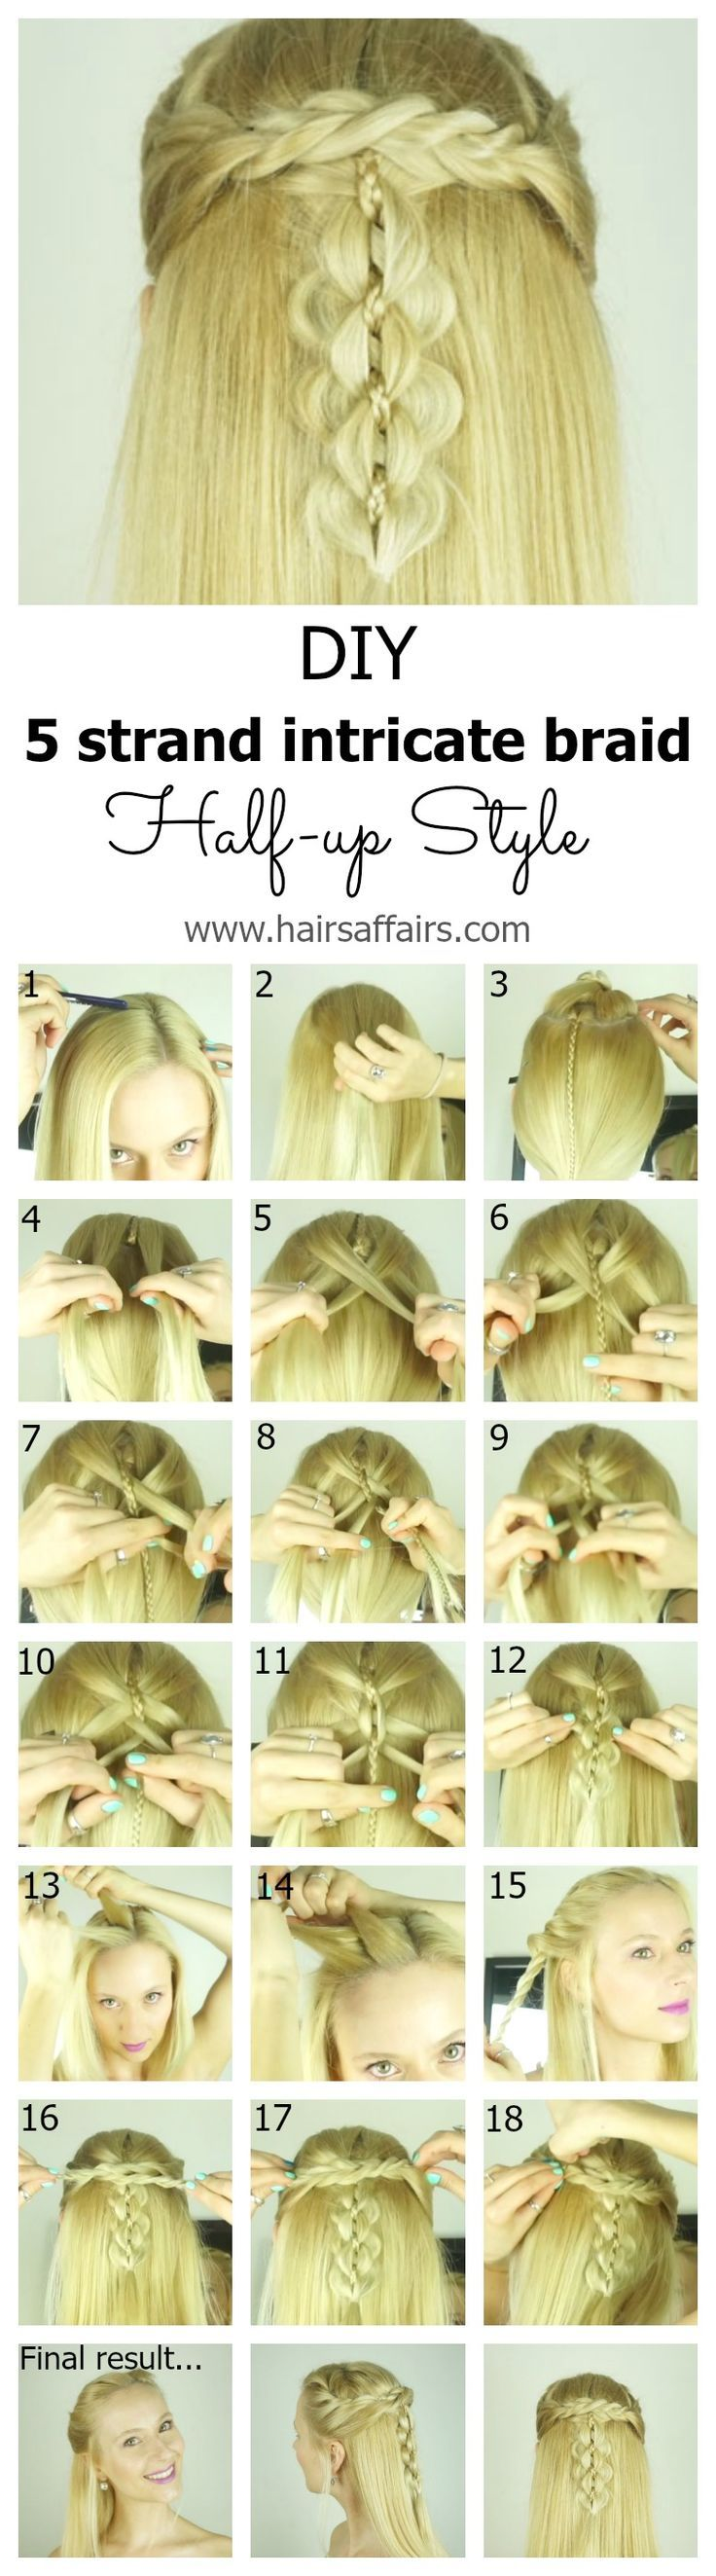 The intricate five strand braid is actually quite doable, even on yourself, once you break it down into easy step-by-step instructions. Check out this blog post (video tutorial included) to see how to make this head turning hairstyle on yourself: https://